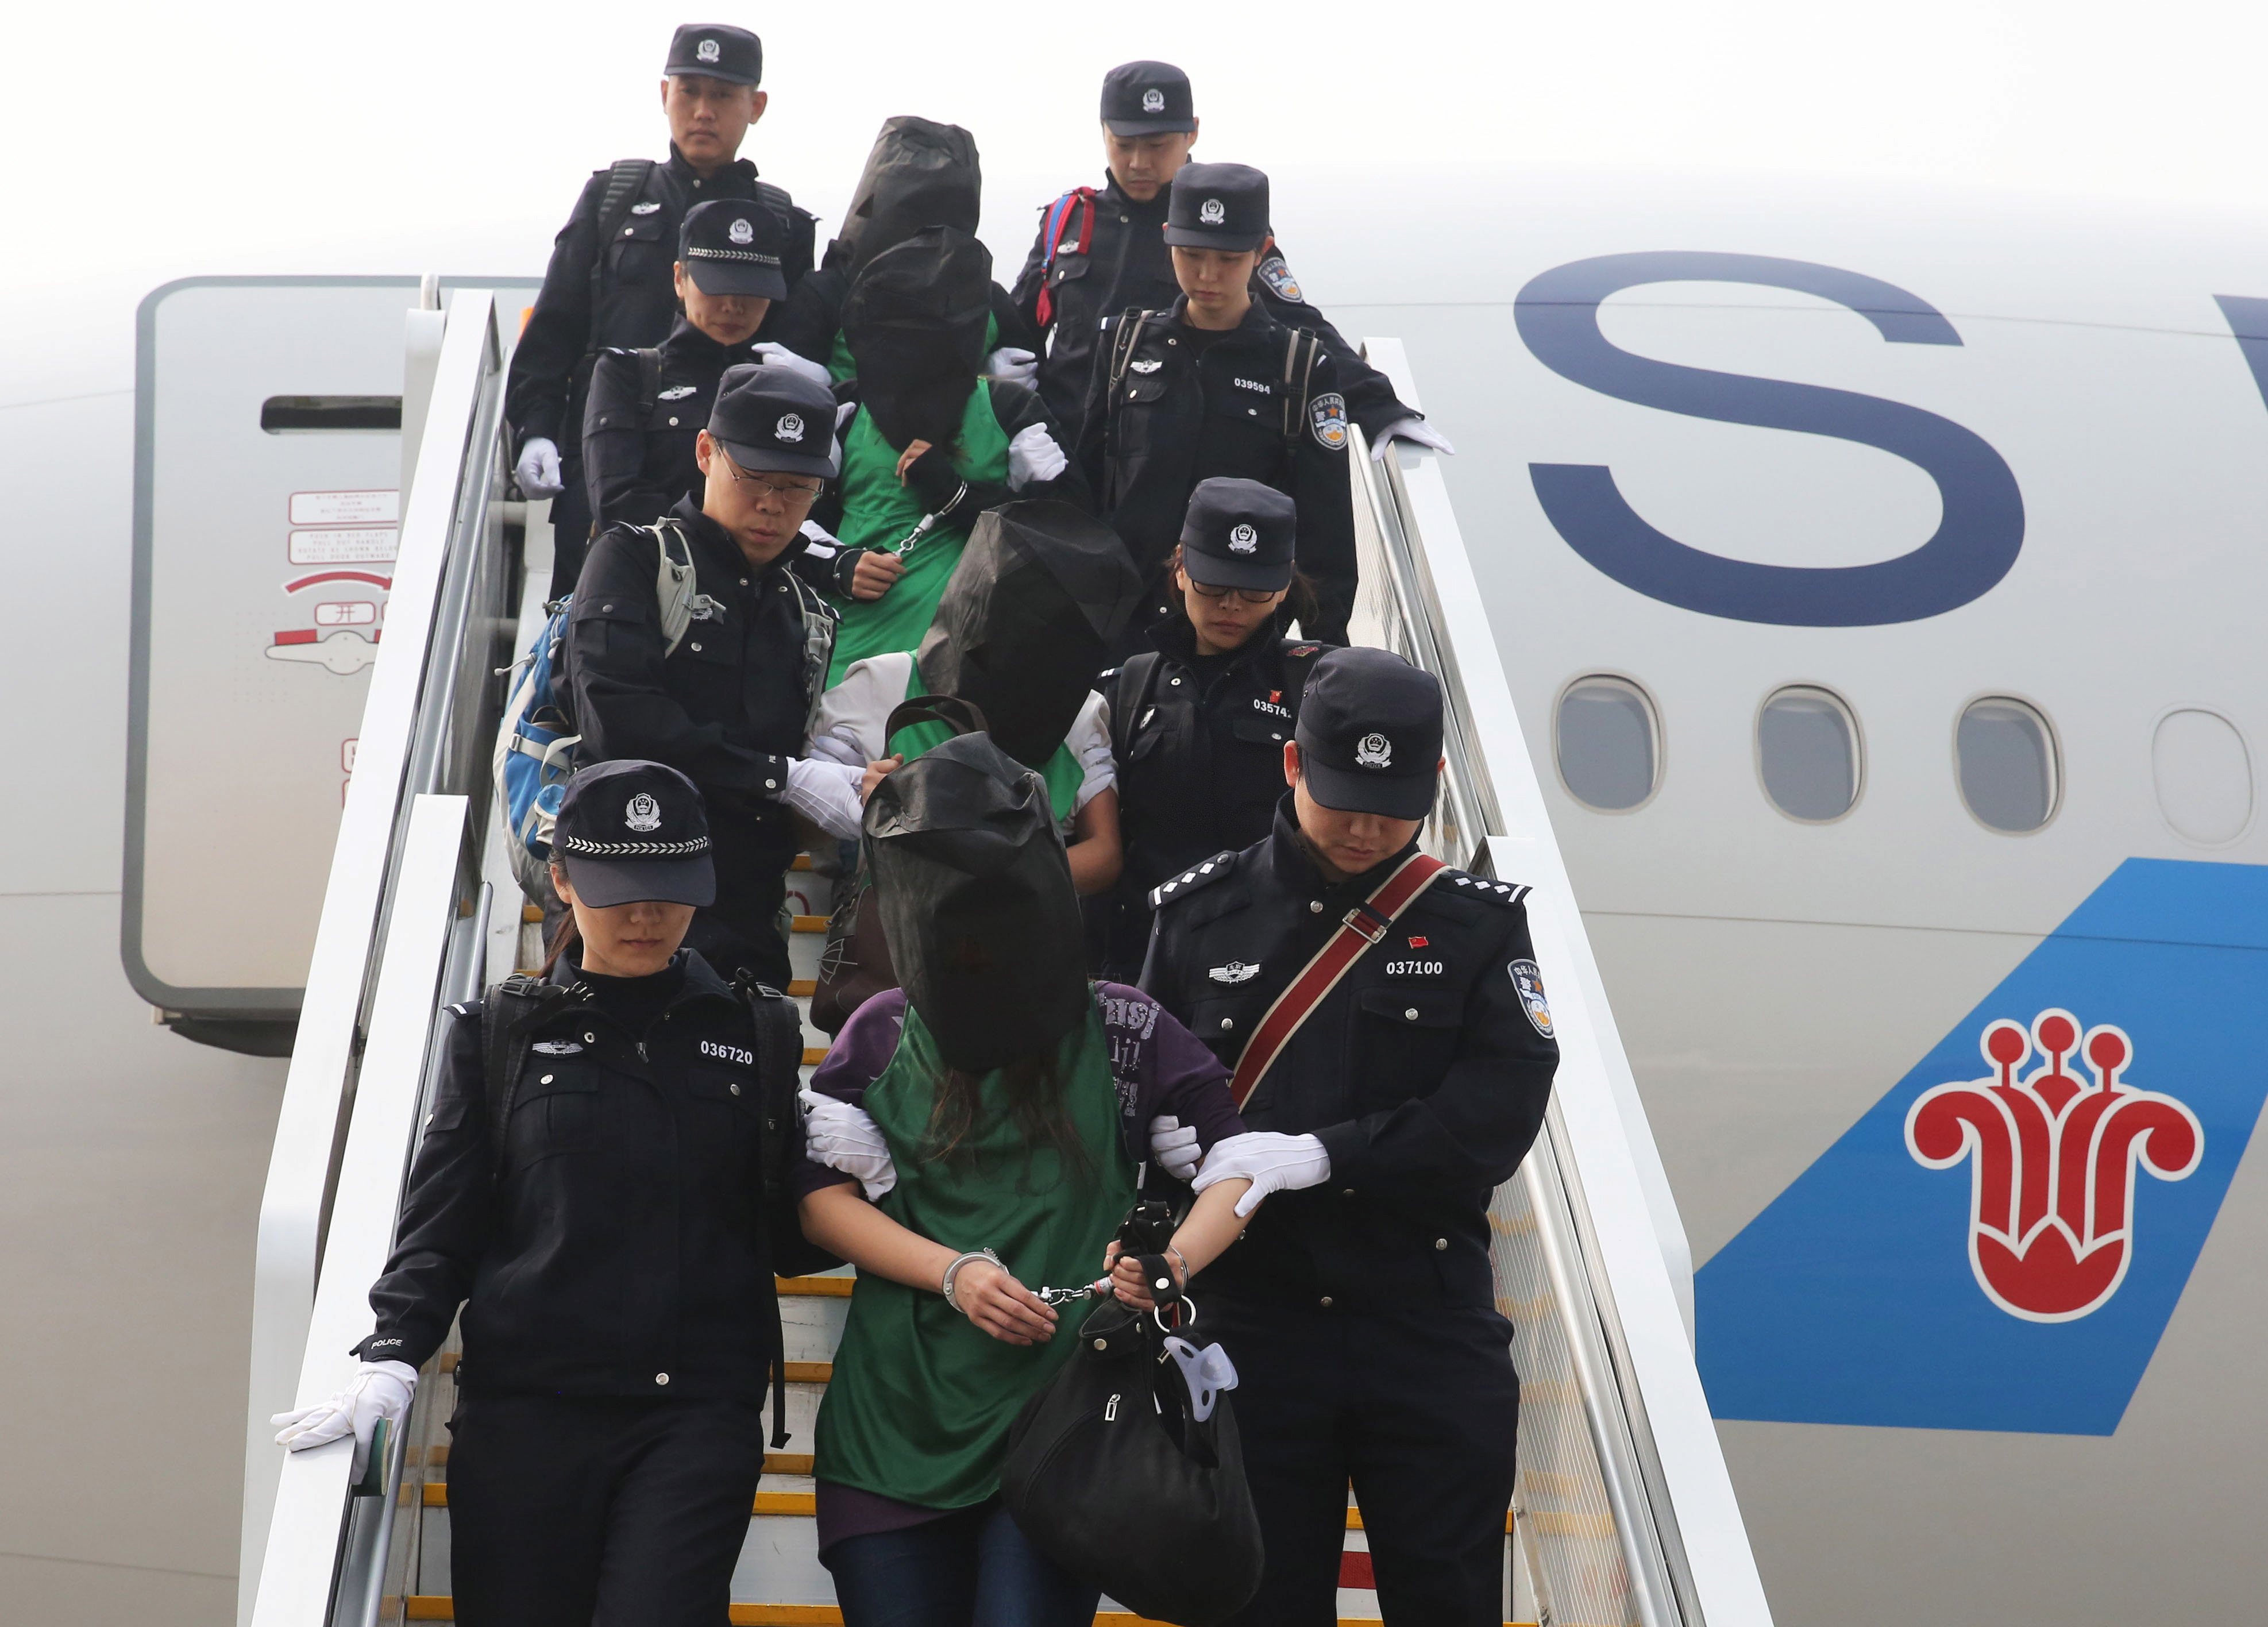 Police escort a group of people wanted for suspected fraud in China, after they were deported from Kenya, as they get off a plane at Beijing Capital International Airport in Beijing on April 13, 2016